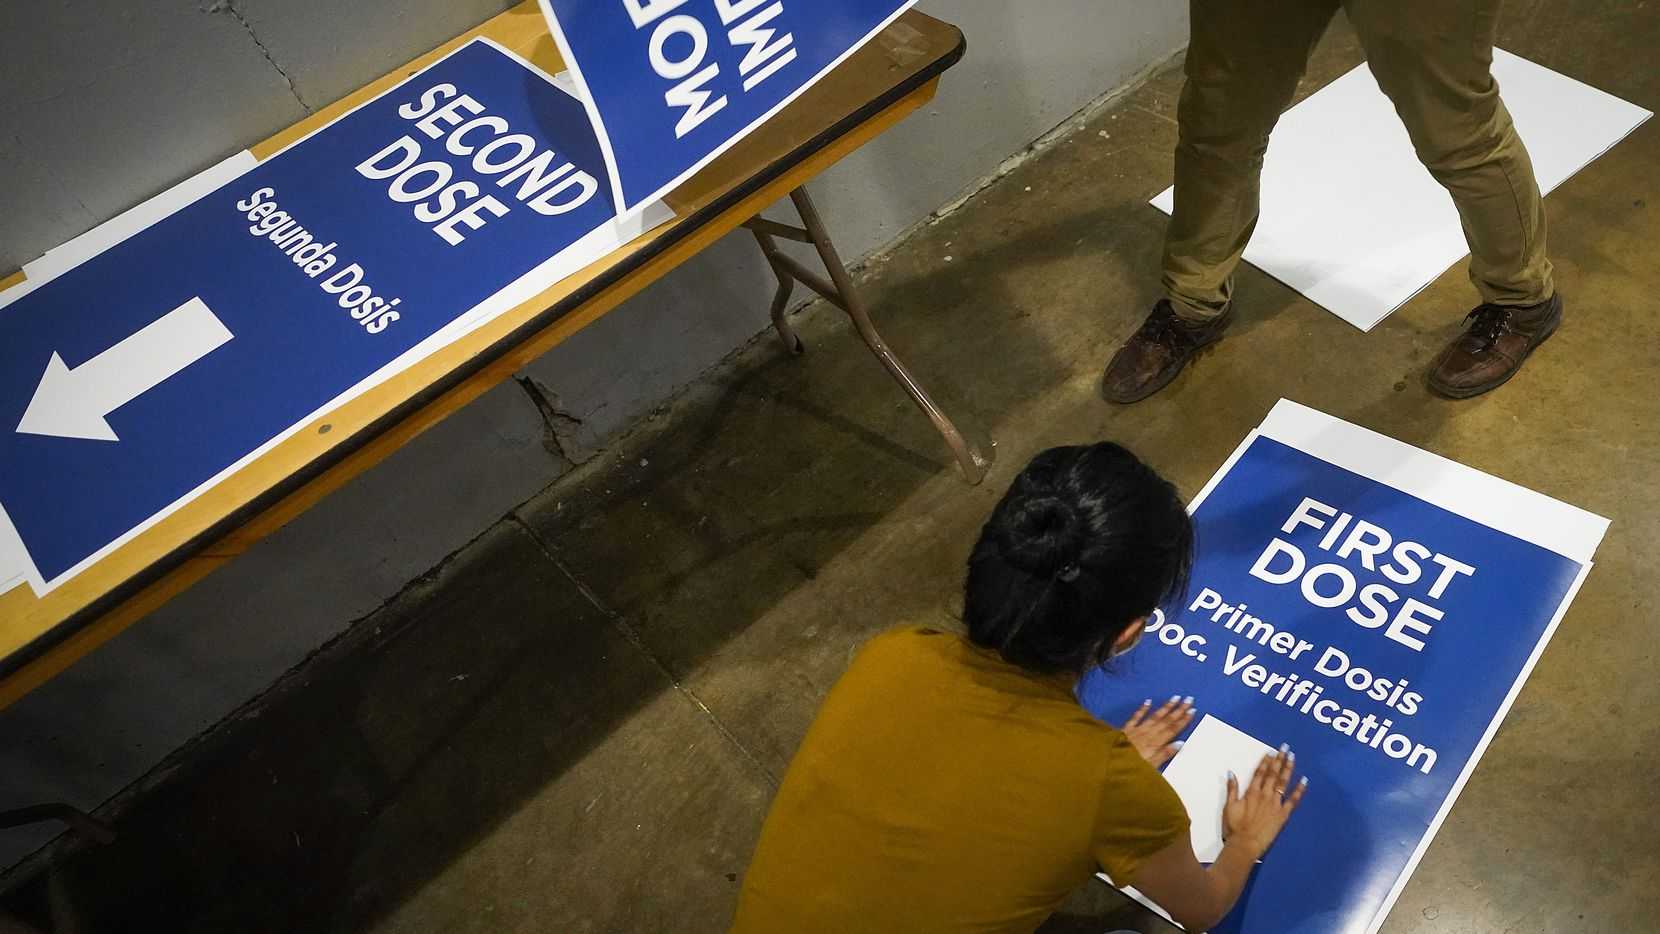 Workers prepare signs that will direct lines of people receiving either their first of second doses of vaccine at the Dallas County COVID-19 vaccination megasite at Fair Park on Friday, Jan. 22, 2021, in Dallas.